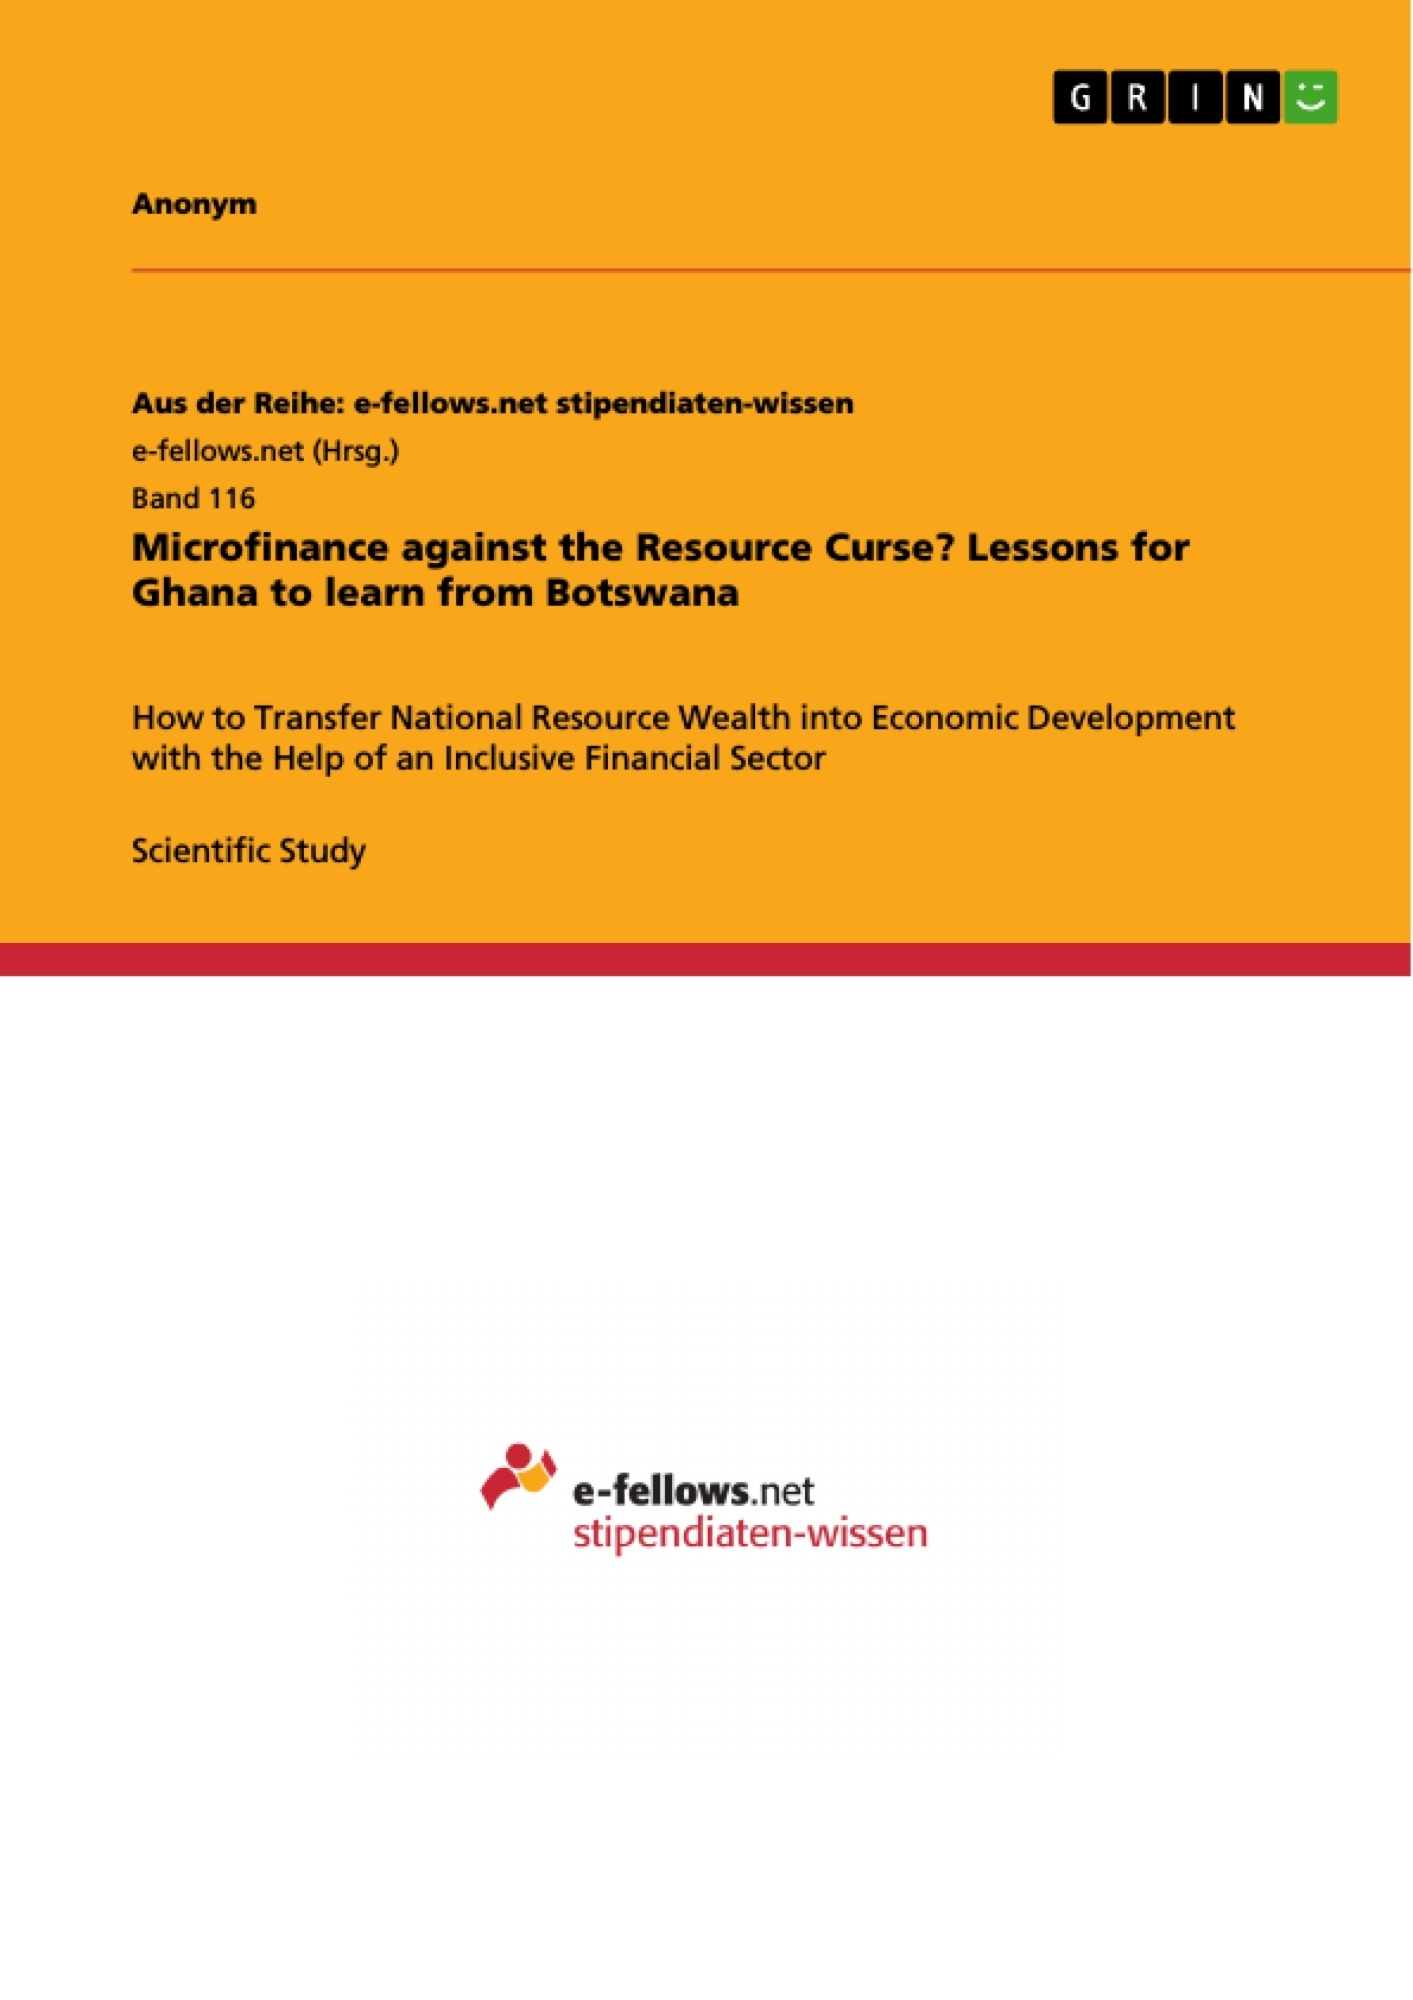 Title: Microfinance against the Resource Curse? Lessons for Ghana to learn from Botswana